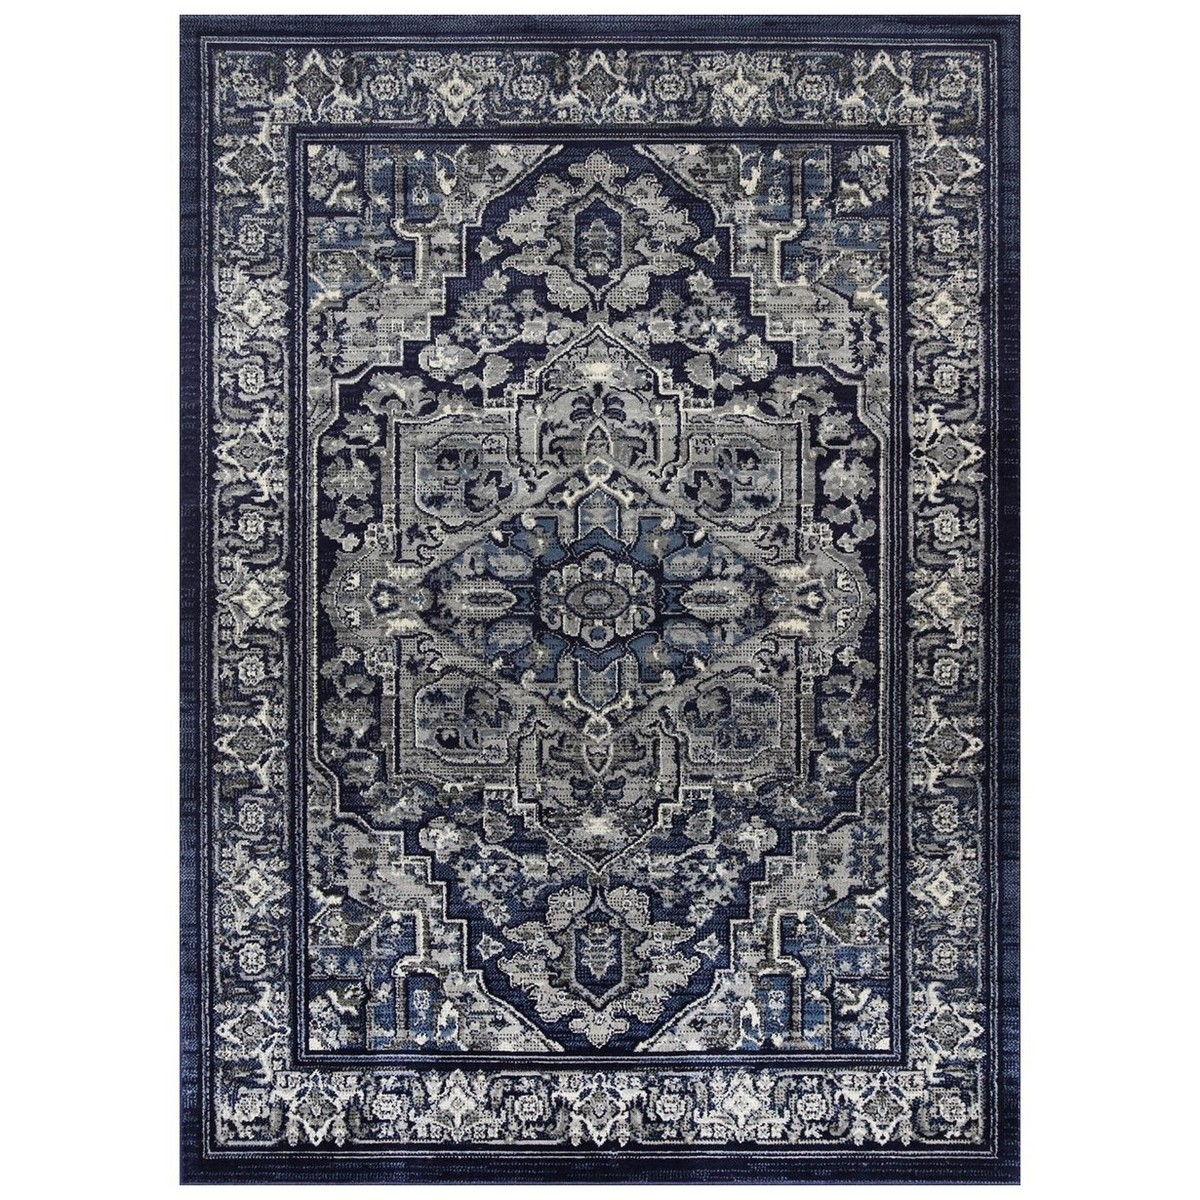 Old World Leyla Oriental Rug, 240x330cm